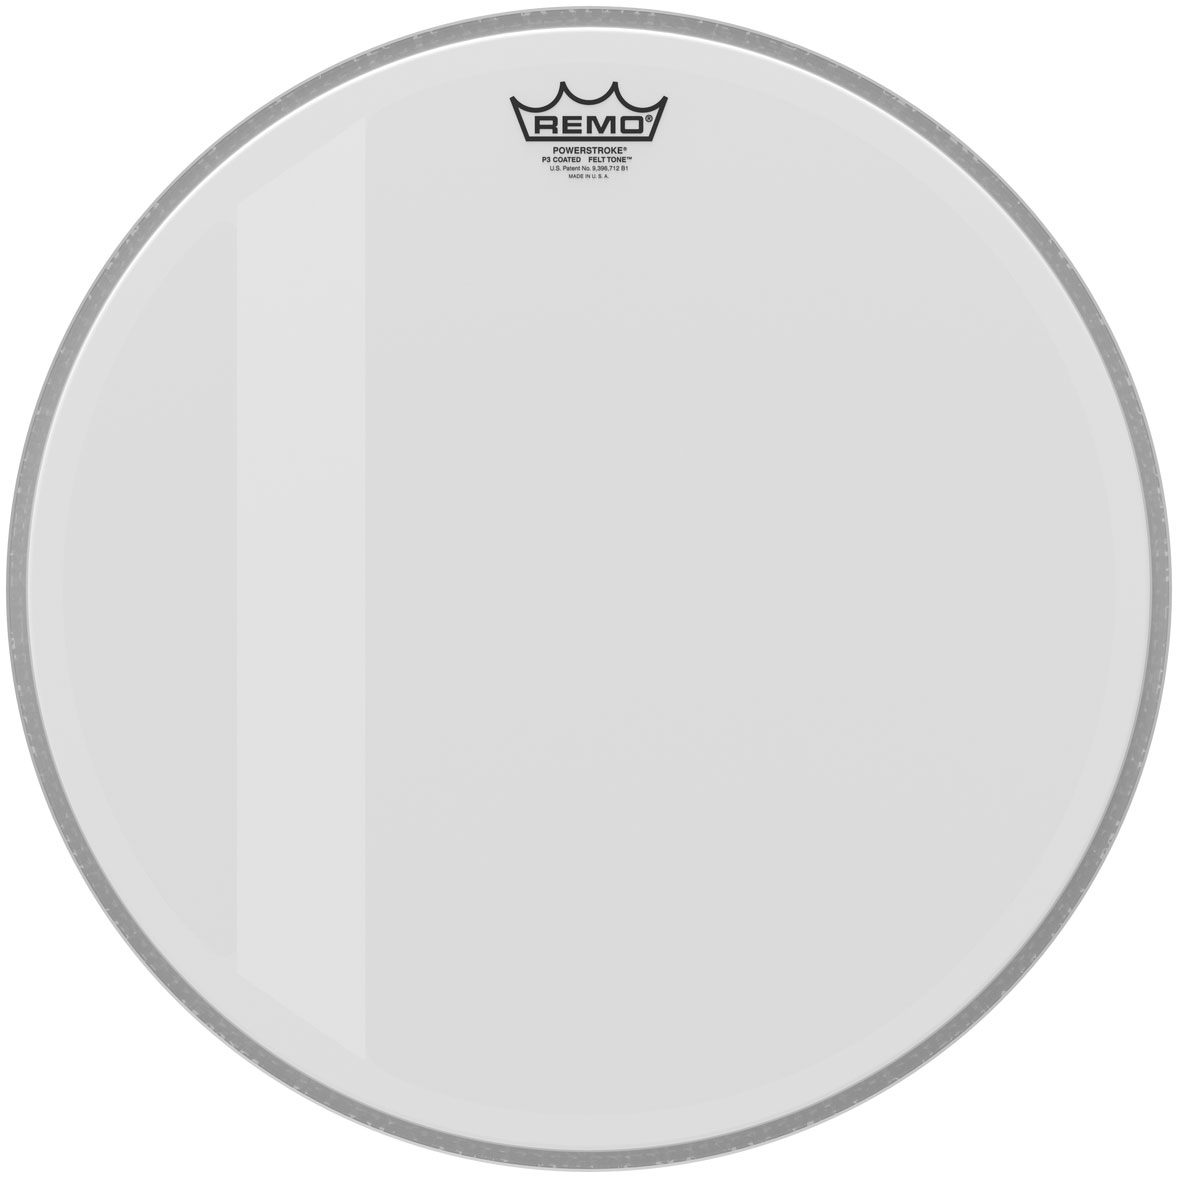 "Remo 18"" Powerstroke P3 Coated Felt Tone Bass Drum Head"